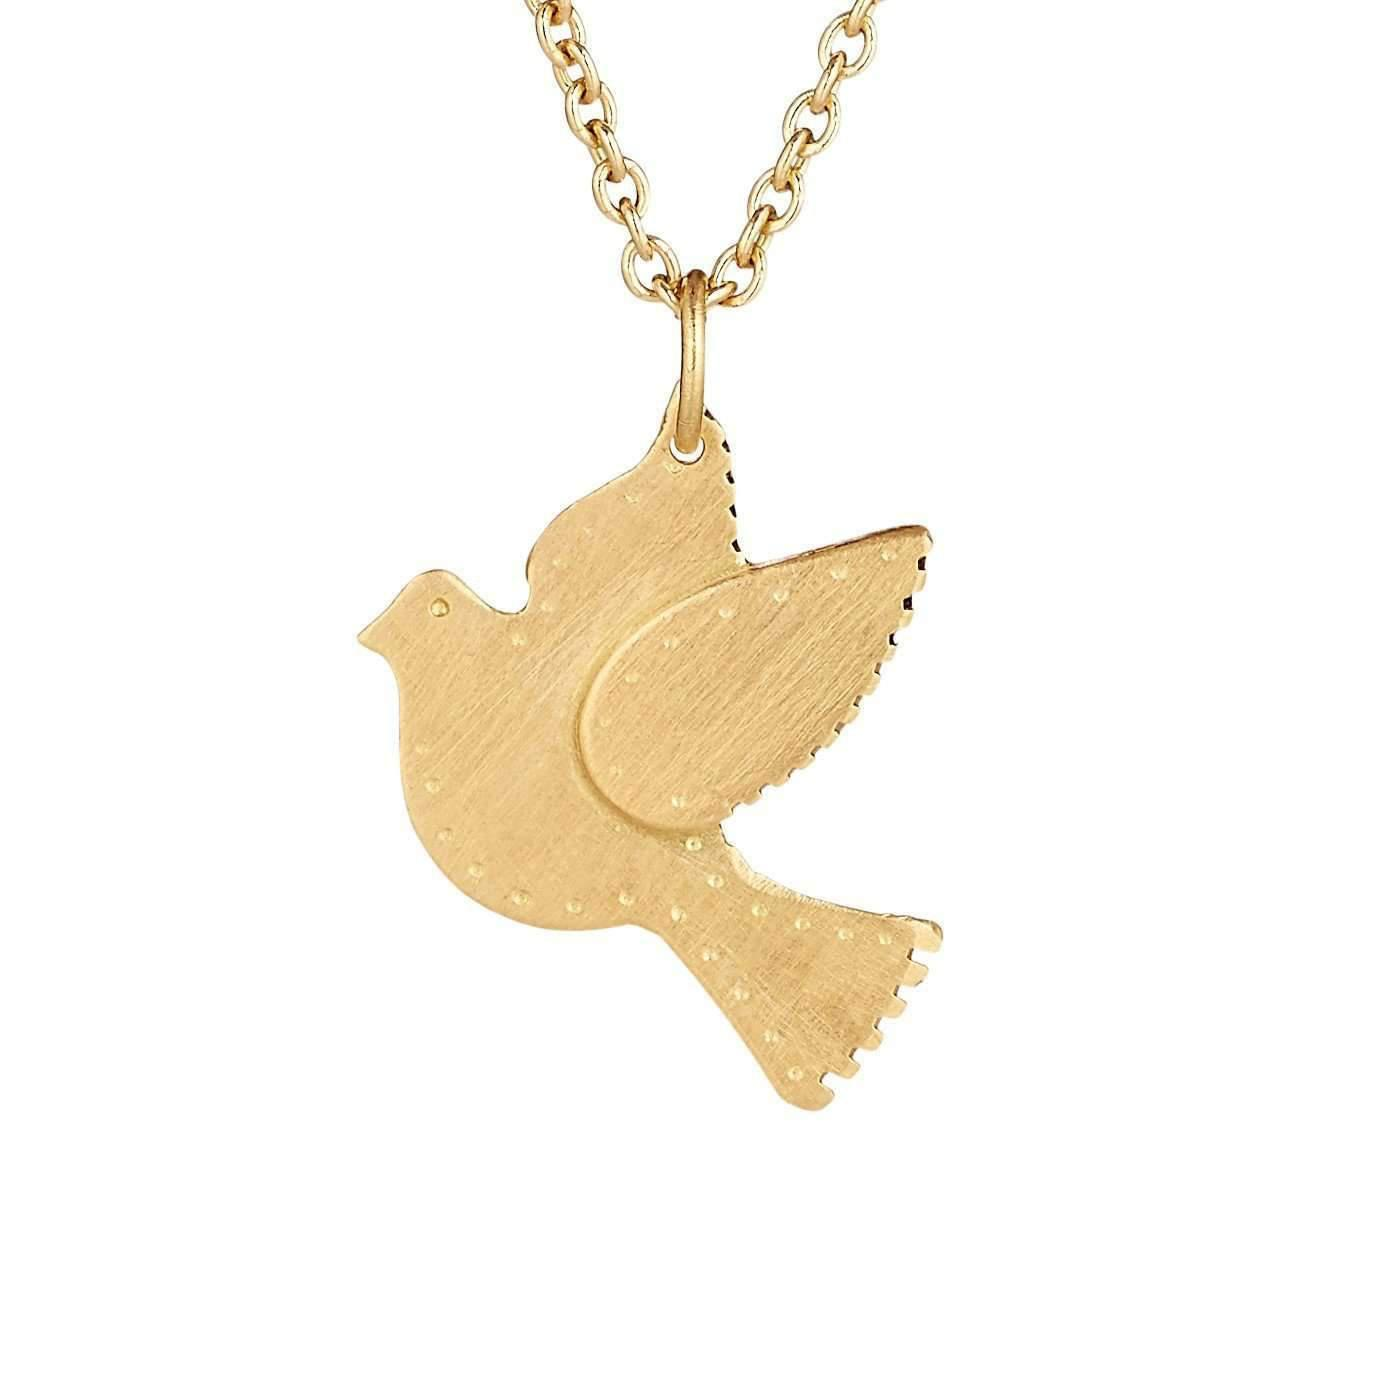 products dainty jewelry necklace gold tinksjewelry dove pendant peace symbol